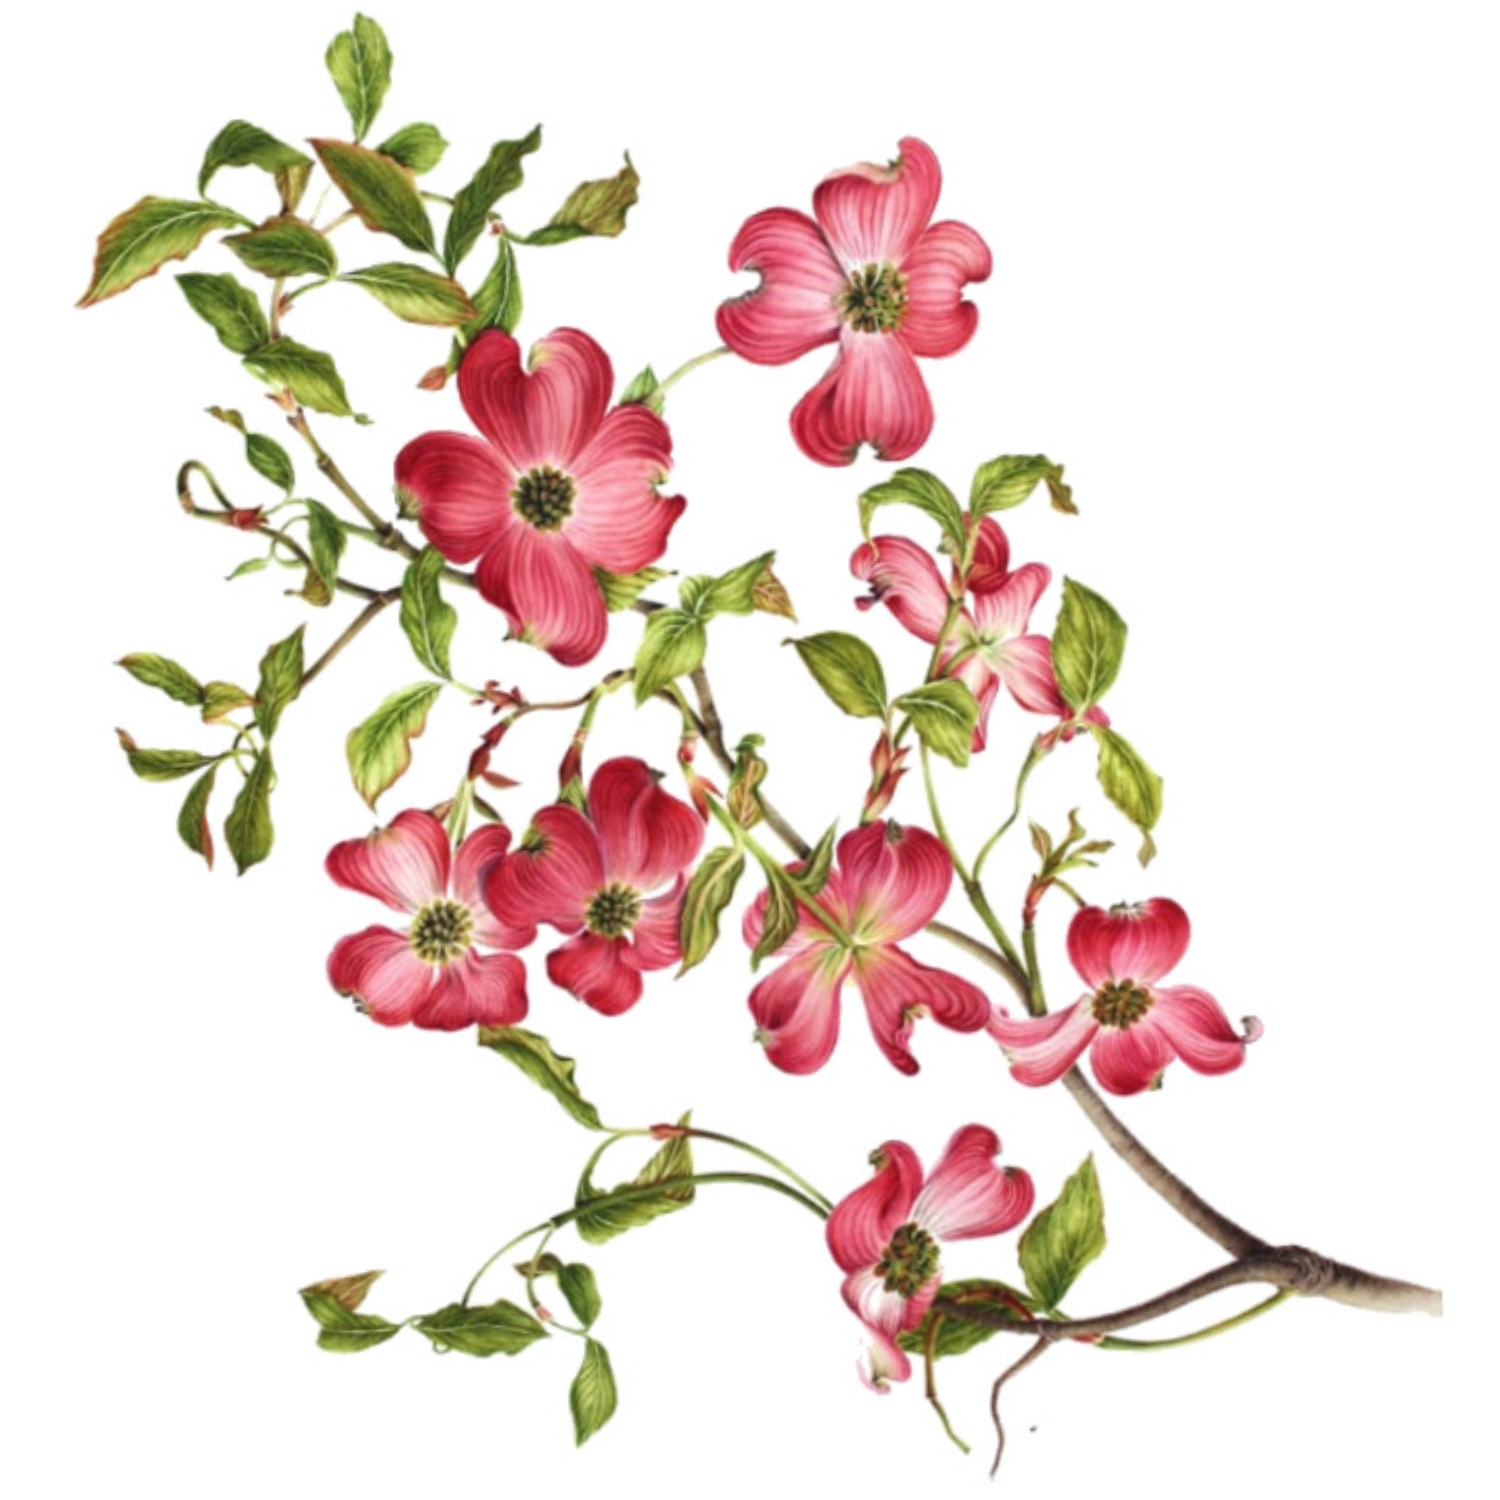 vector royalty free download Blossom clipart dogwood tree. Free cliparts download clip.